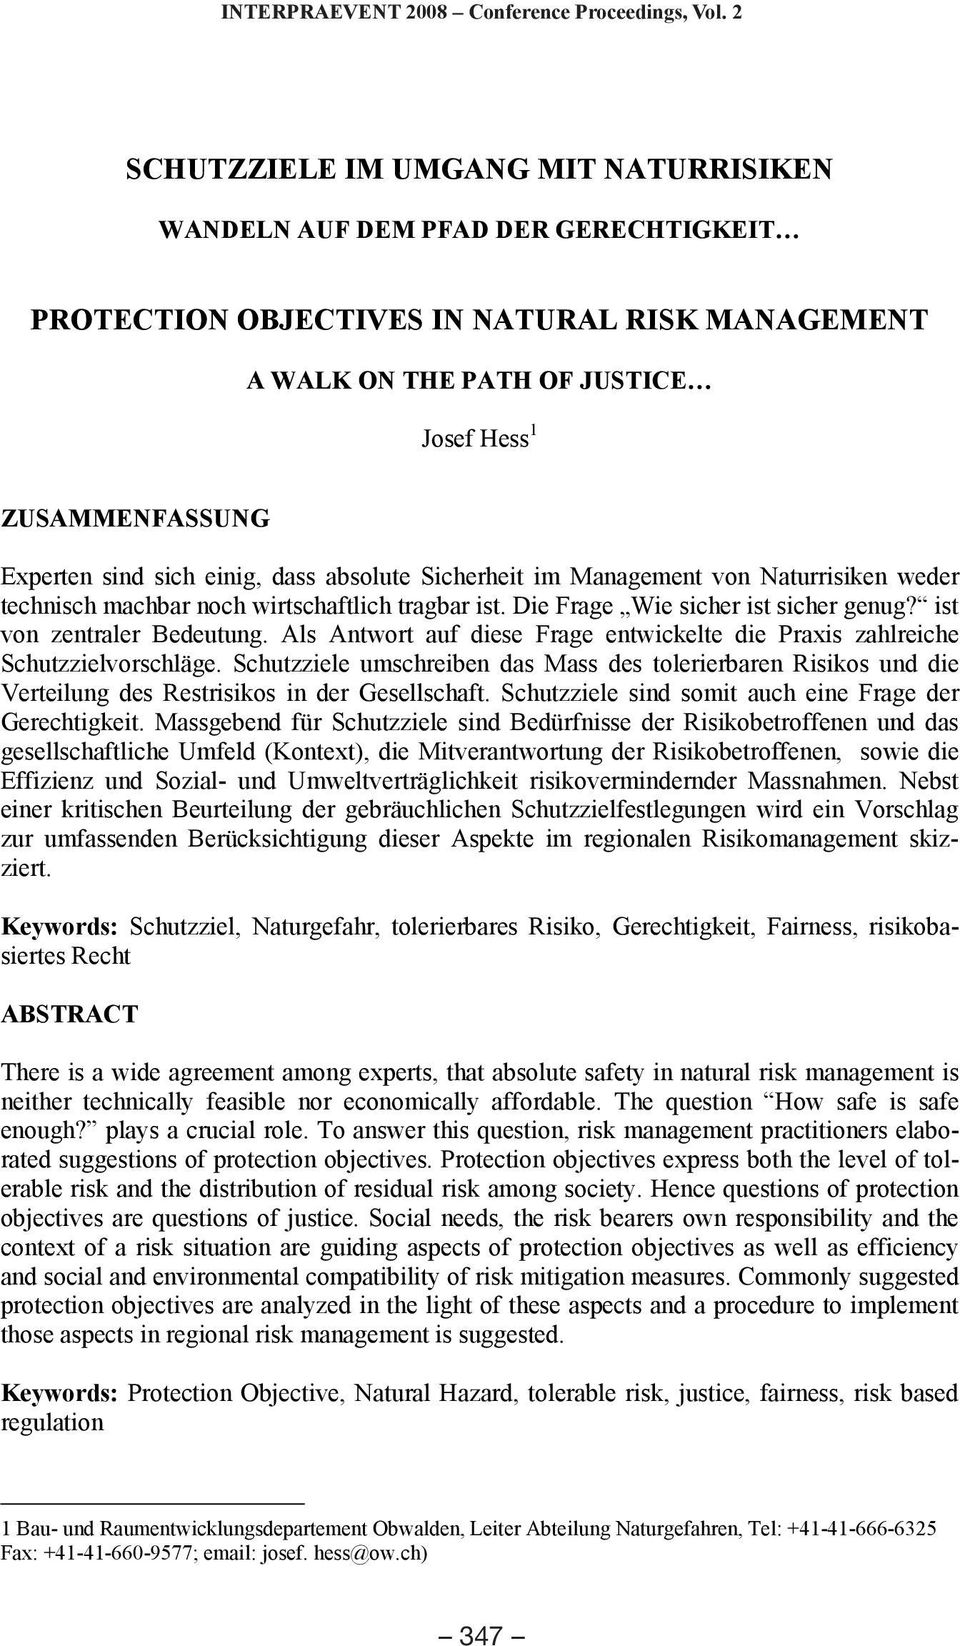 MANAGEMENT PROTECTION OBJECTIVES IN NATURAL RISK MANAGEMENT A WALK ON THE PATH OF JUSTICE A WALK ON THE PATH OF JUSTICE Josef Hess 1 Josef Hess 1 ZUSAMMENFASSUNG ZUSAMMENFASSUNG Experten sind sich